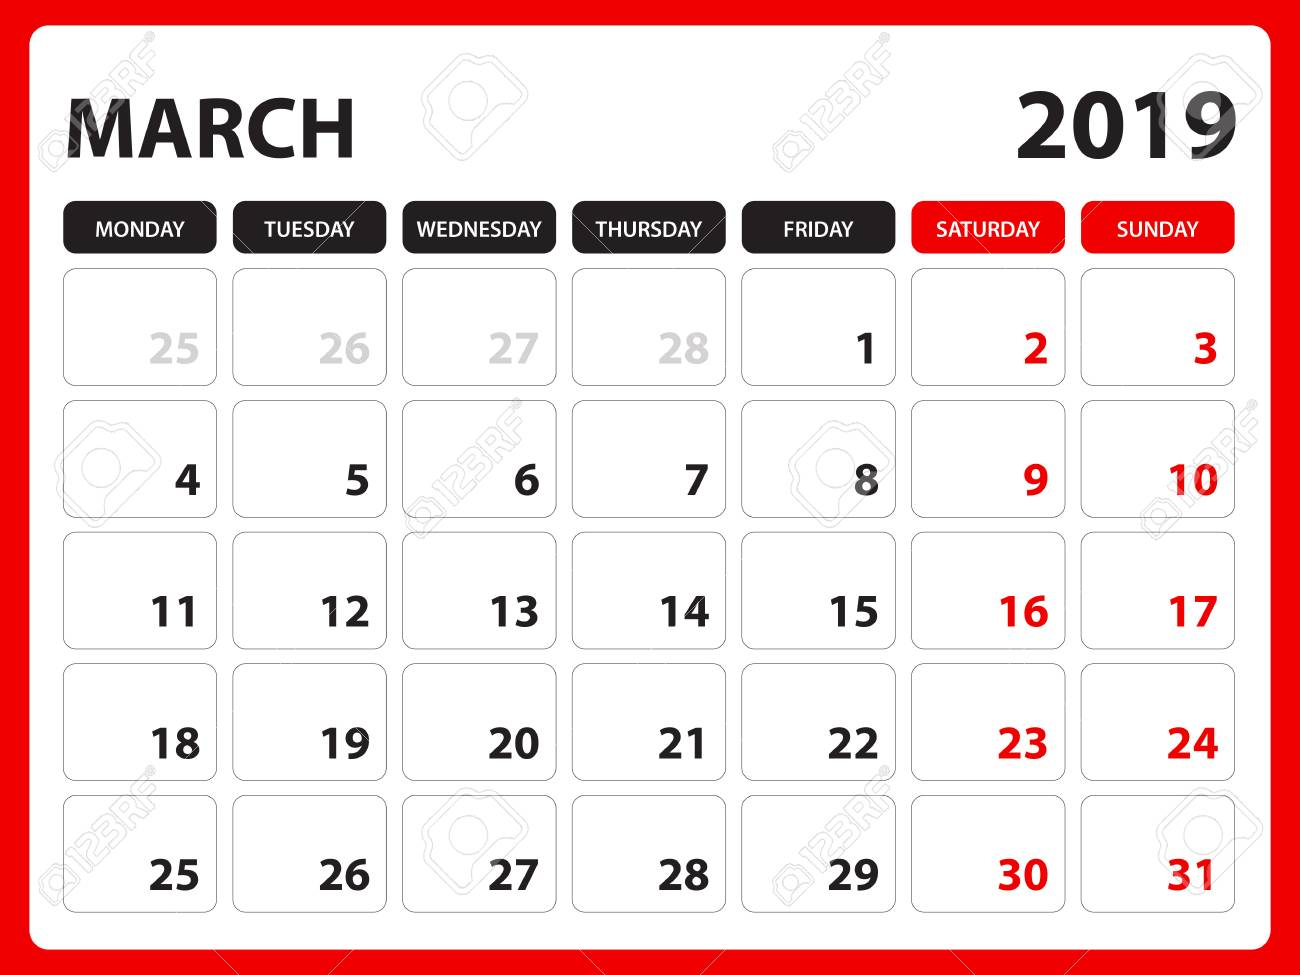 photograph about Printable March Calendar titled Table calendar for MARCH 2019 template, Printable calendar, Planner..